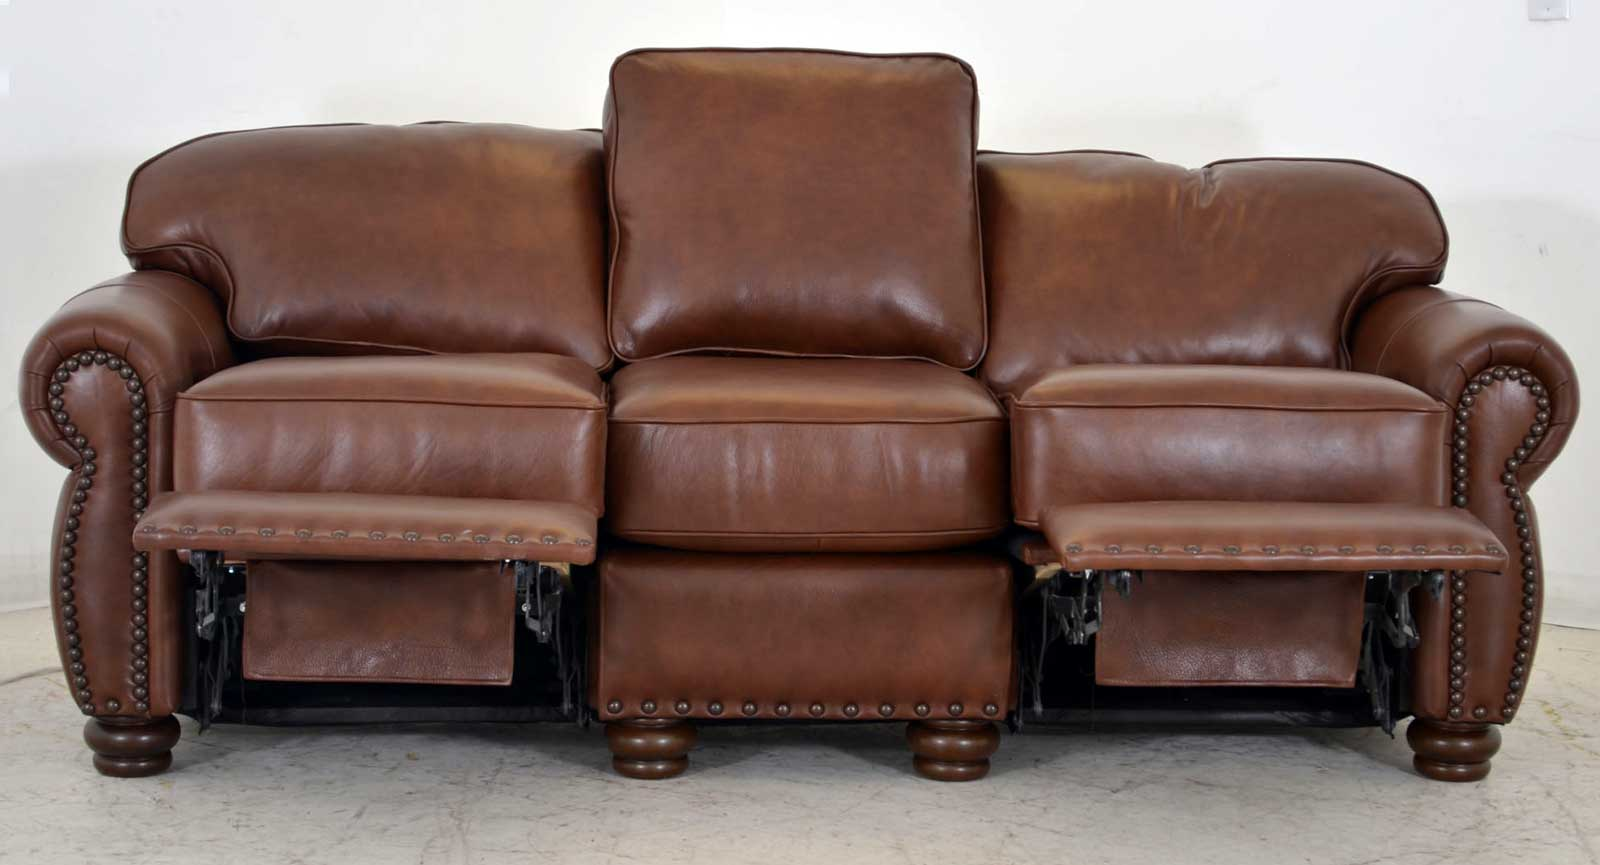 leather sofa cleaning repair company french montana texas home  the